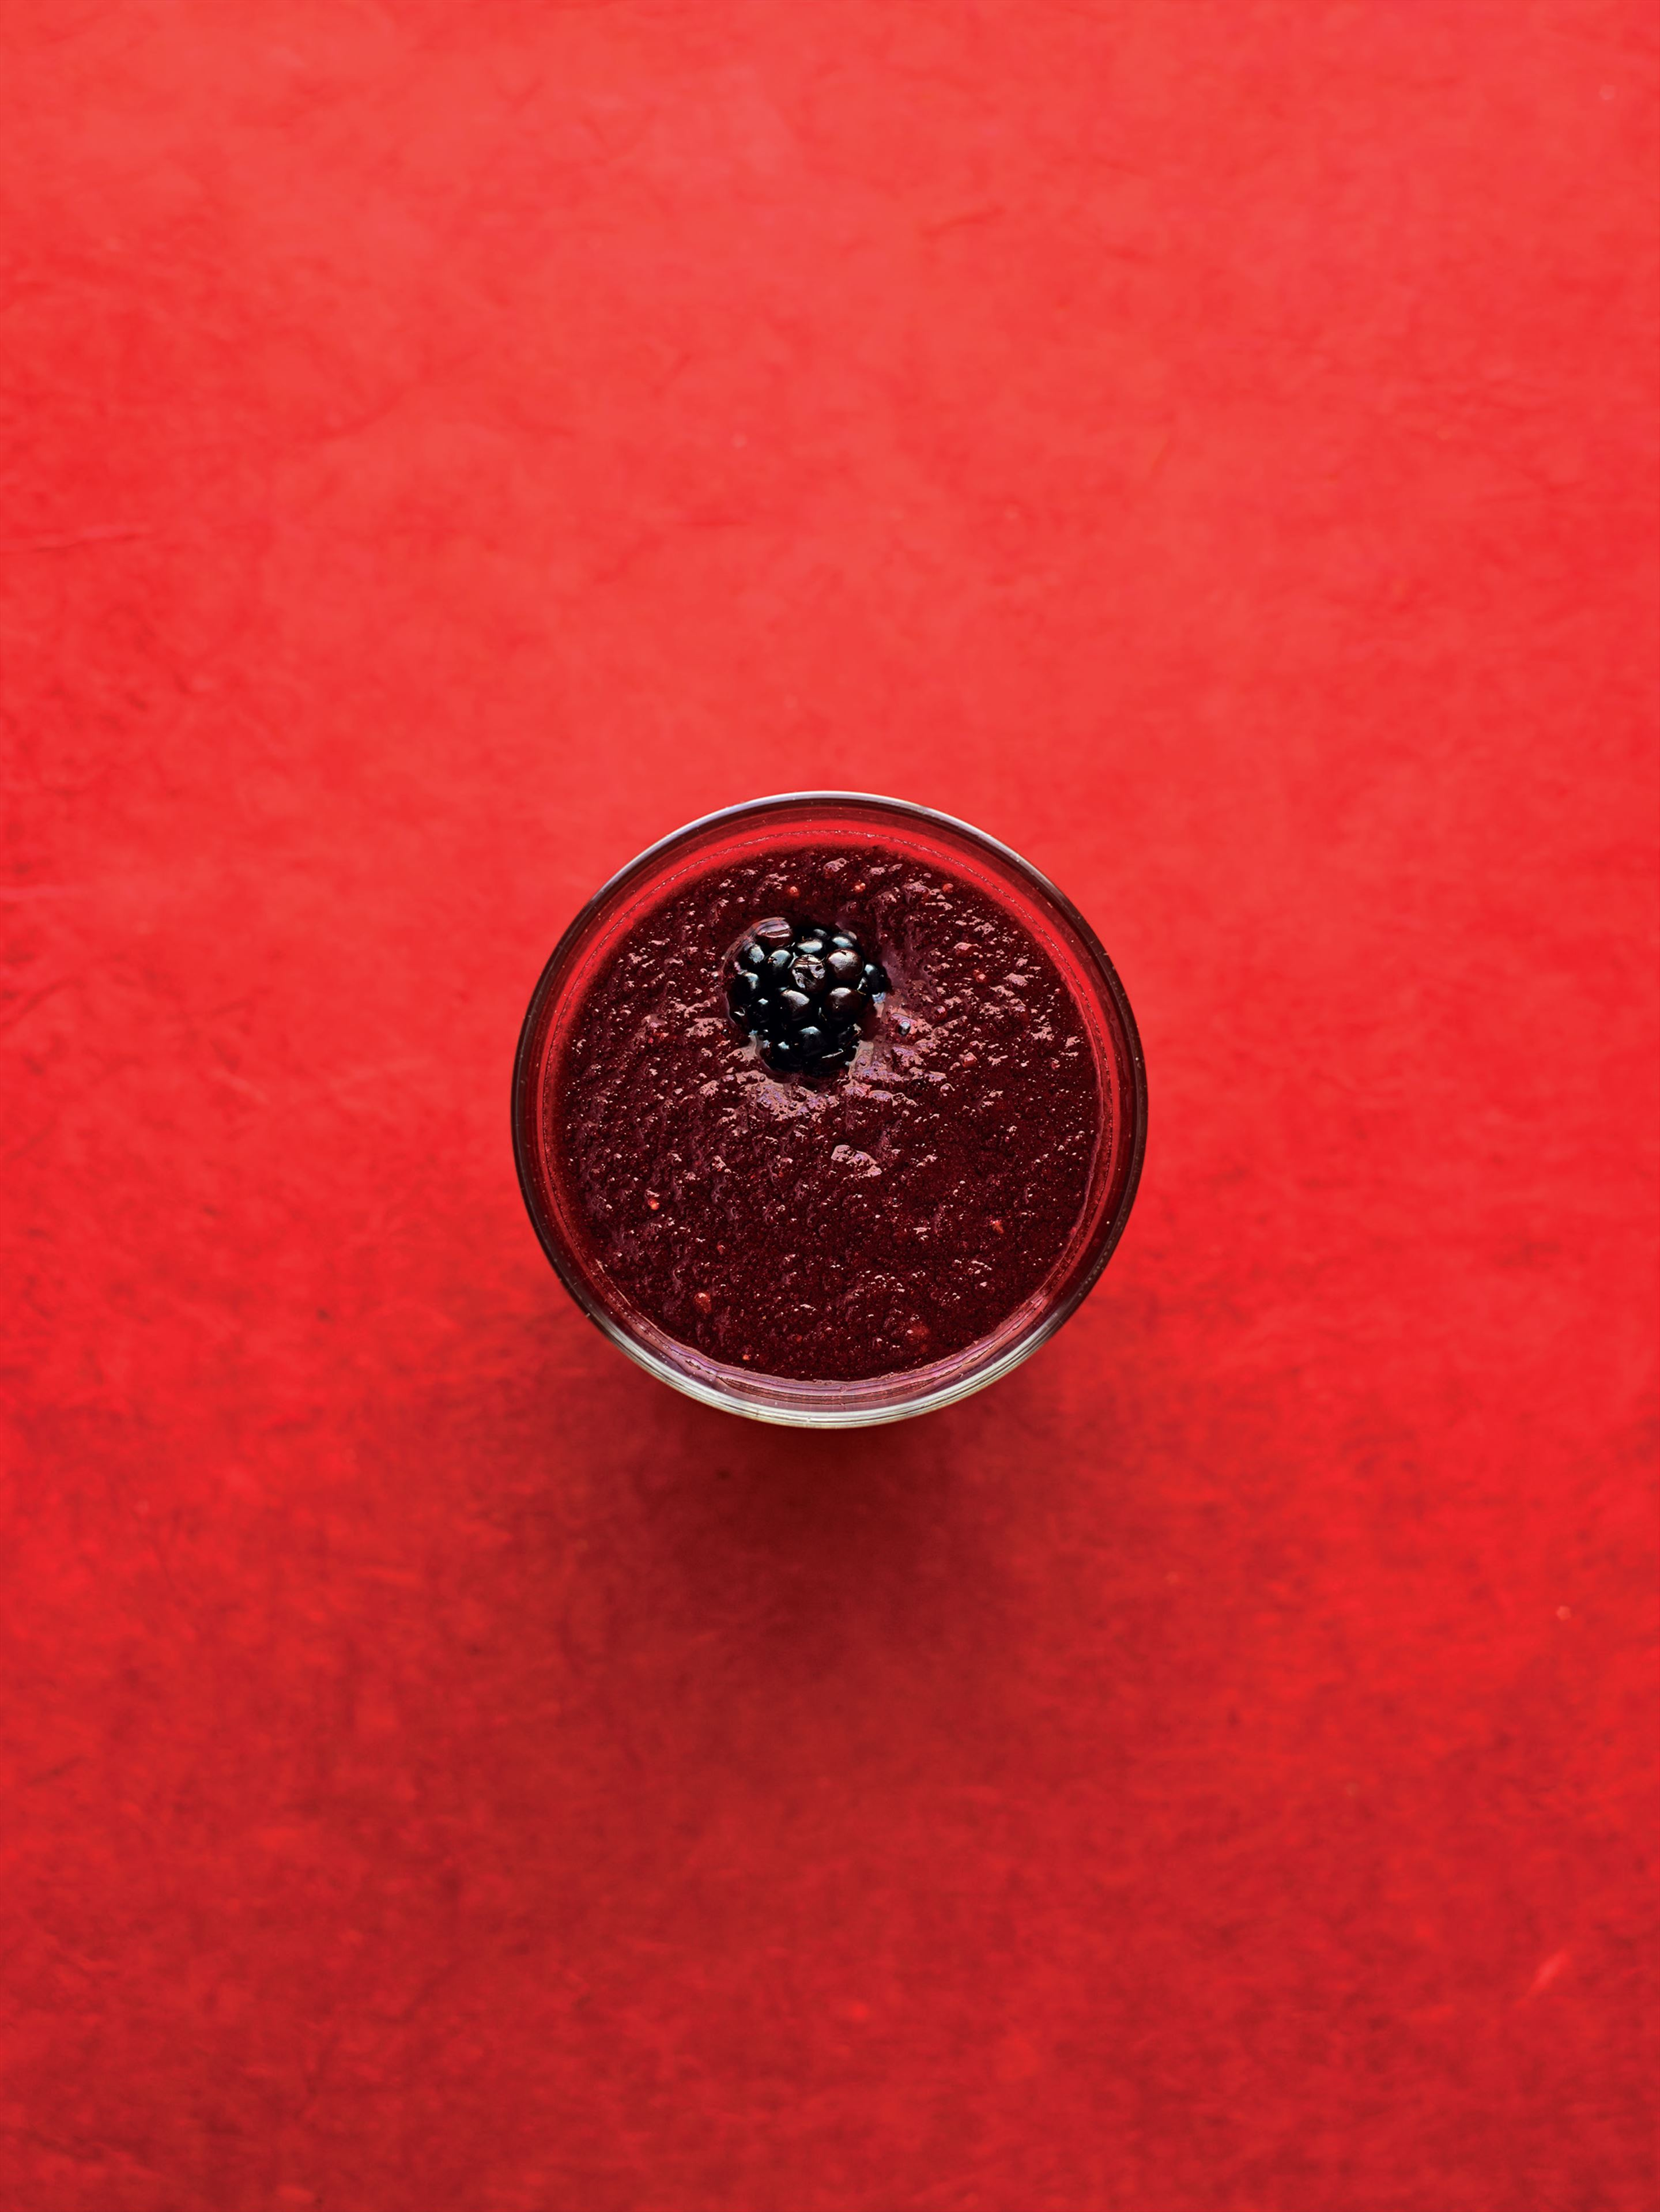 Apple, blackberry and beetroot refresher